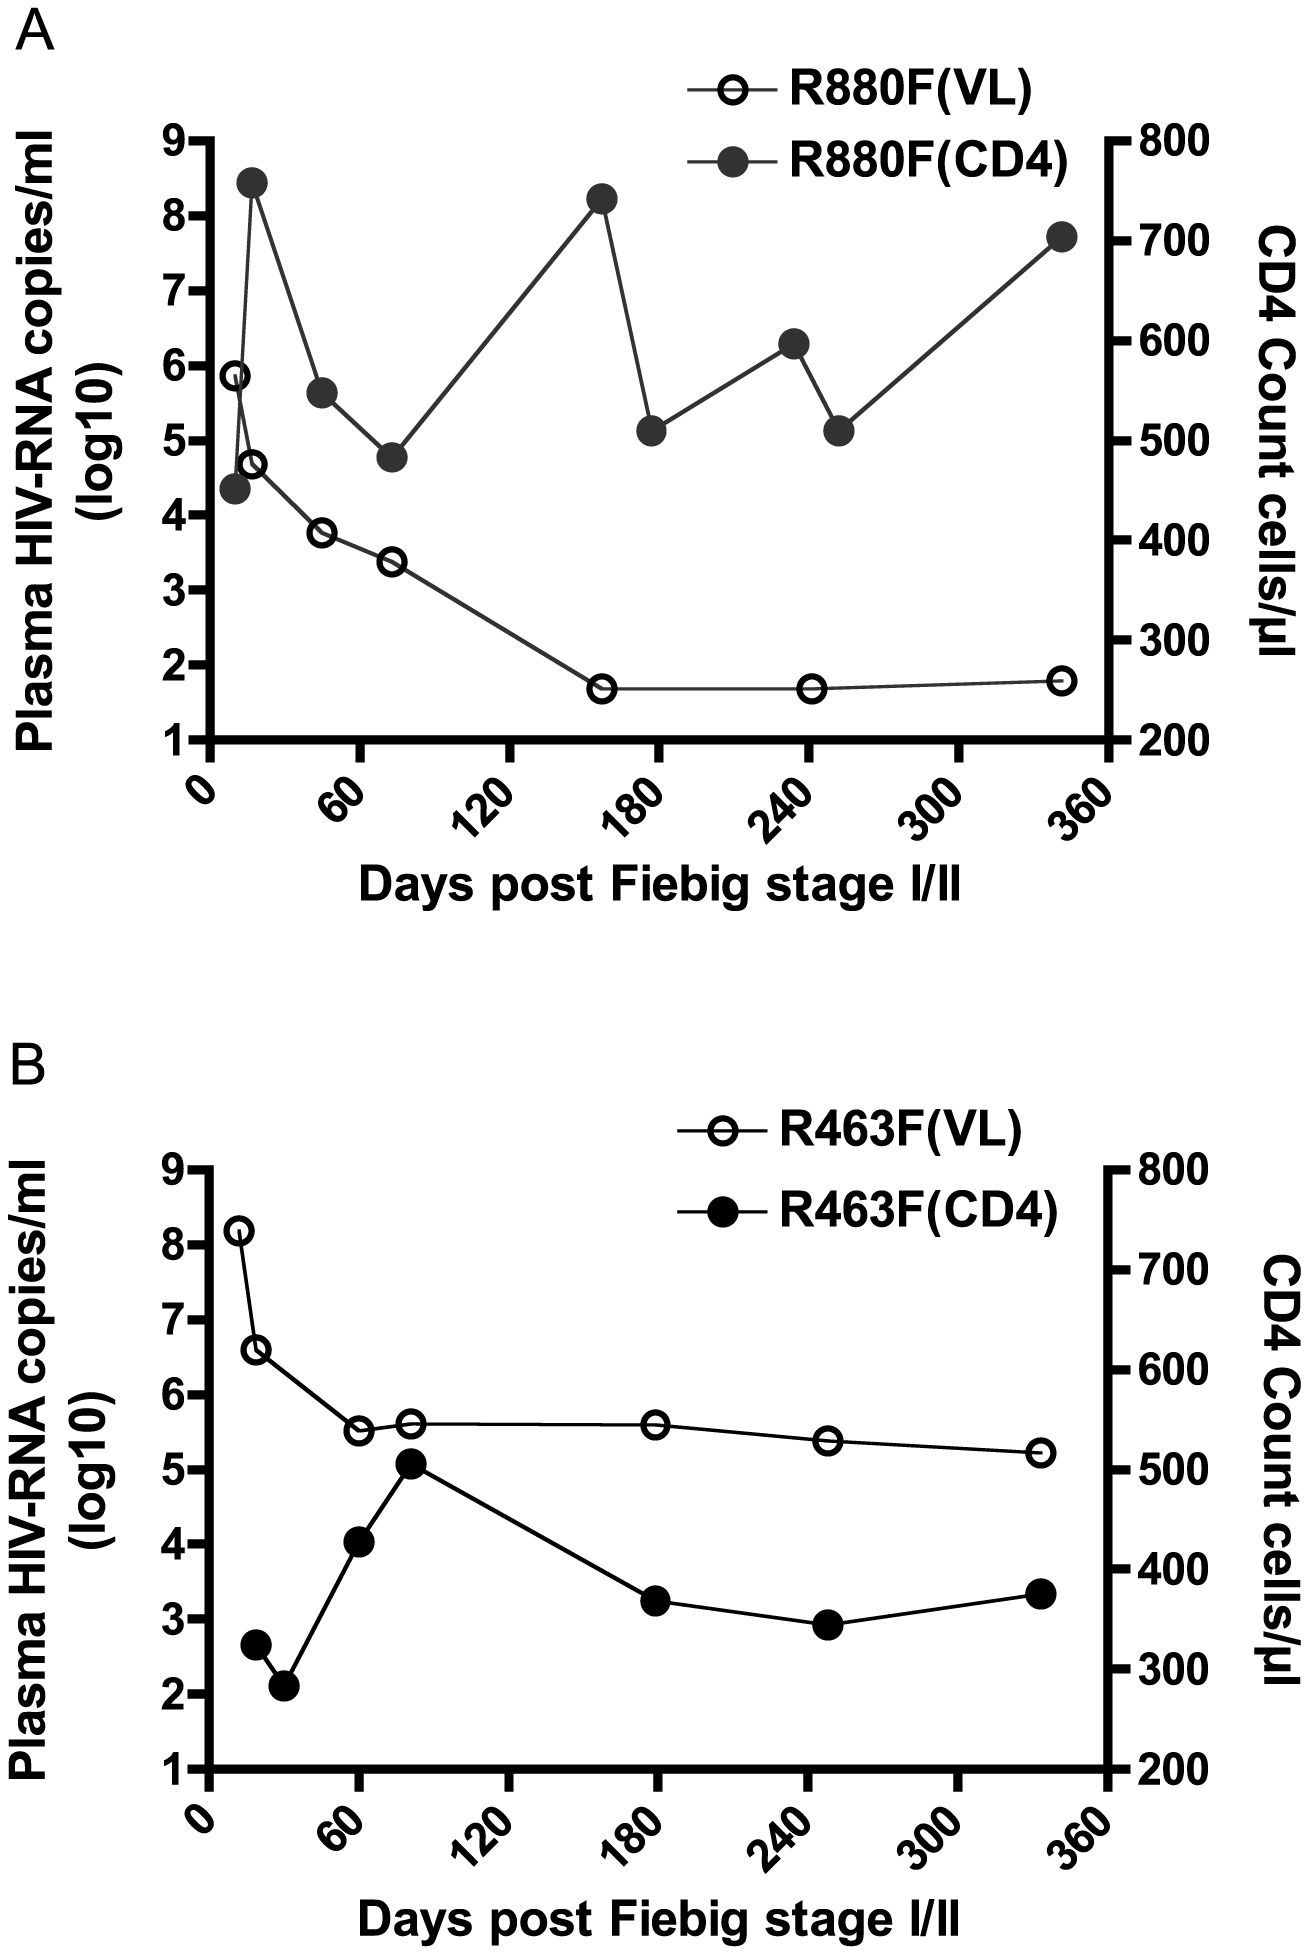 Plasma viral load and CD4 count in the two recipients during the first year of infection.